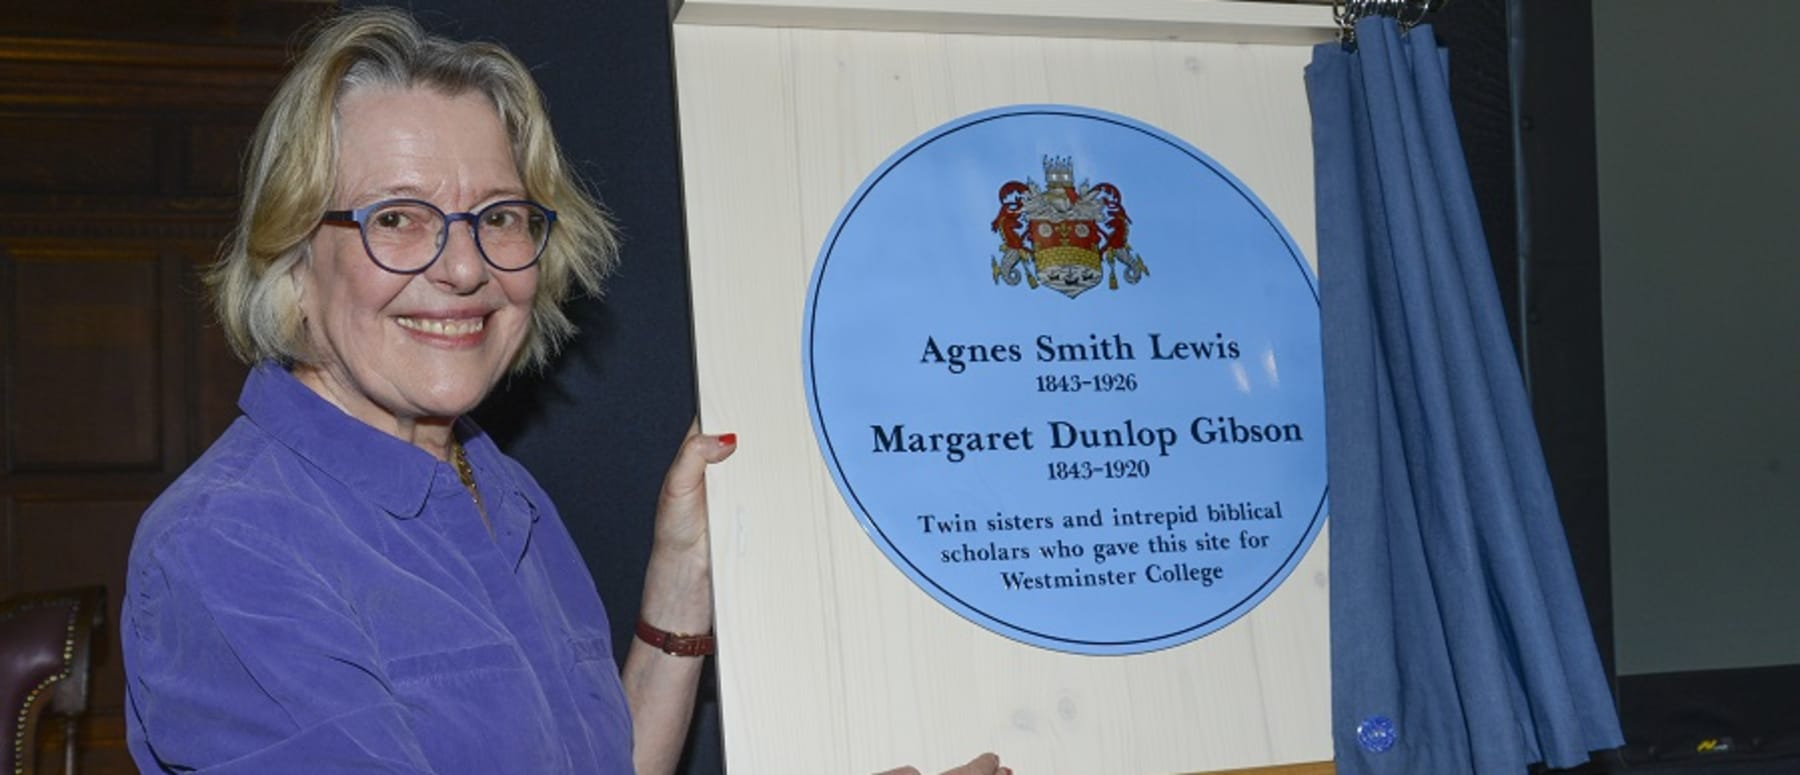 Cambridge Blue Plaque unveiled at Westminster College to Commemorate Intrepid Founding Sisters